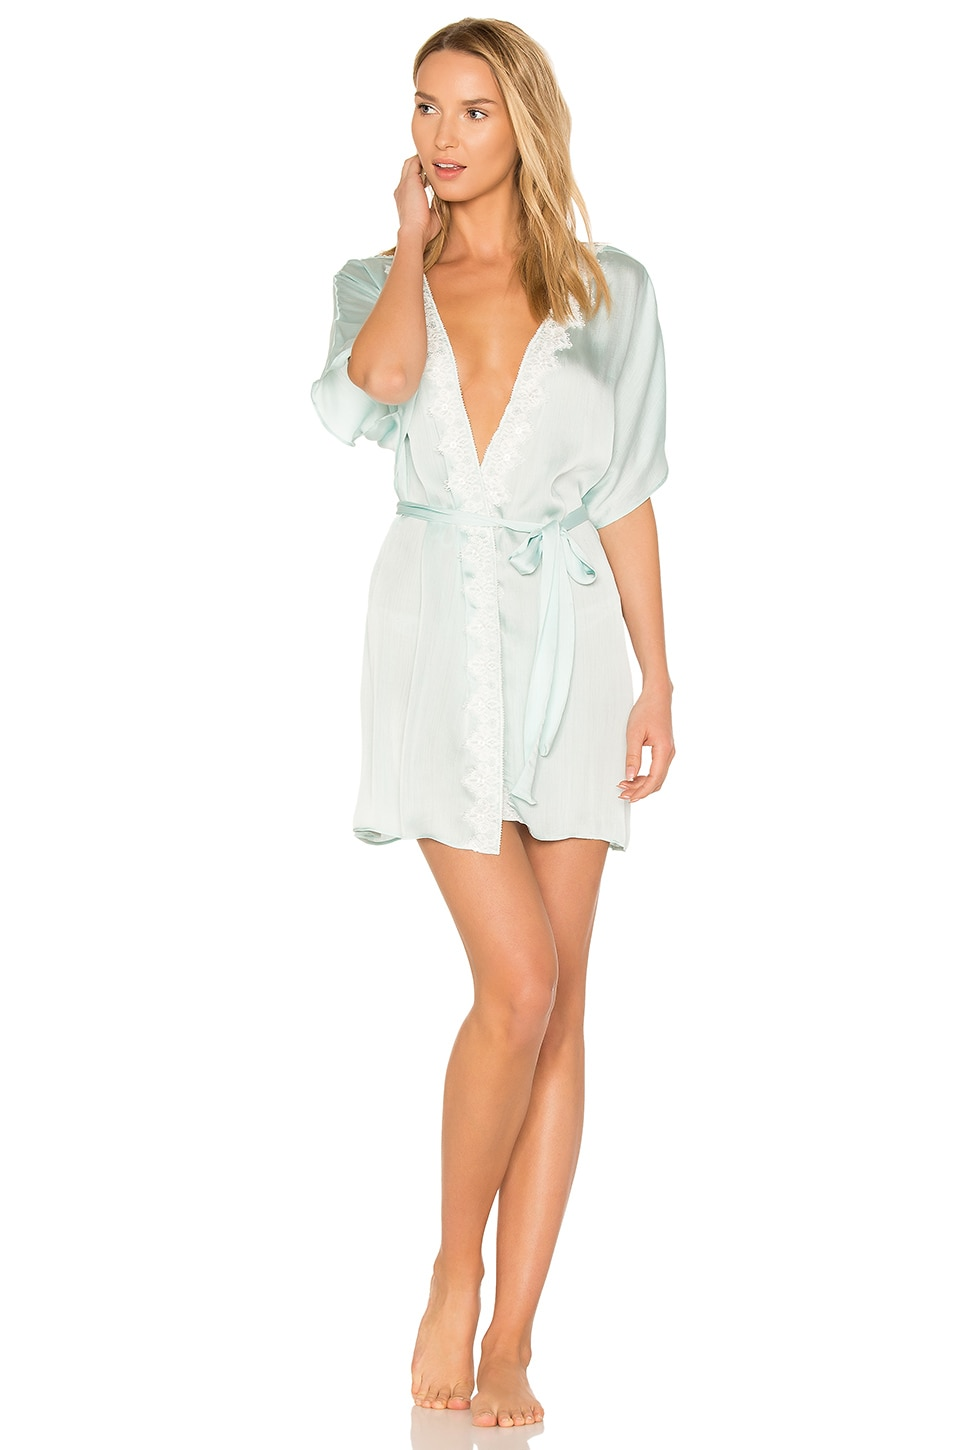 Mira Texture Satin Lace Cover Up by Flora Nikrooz